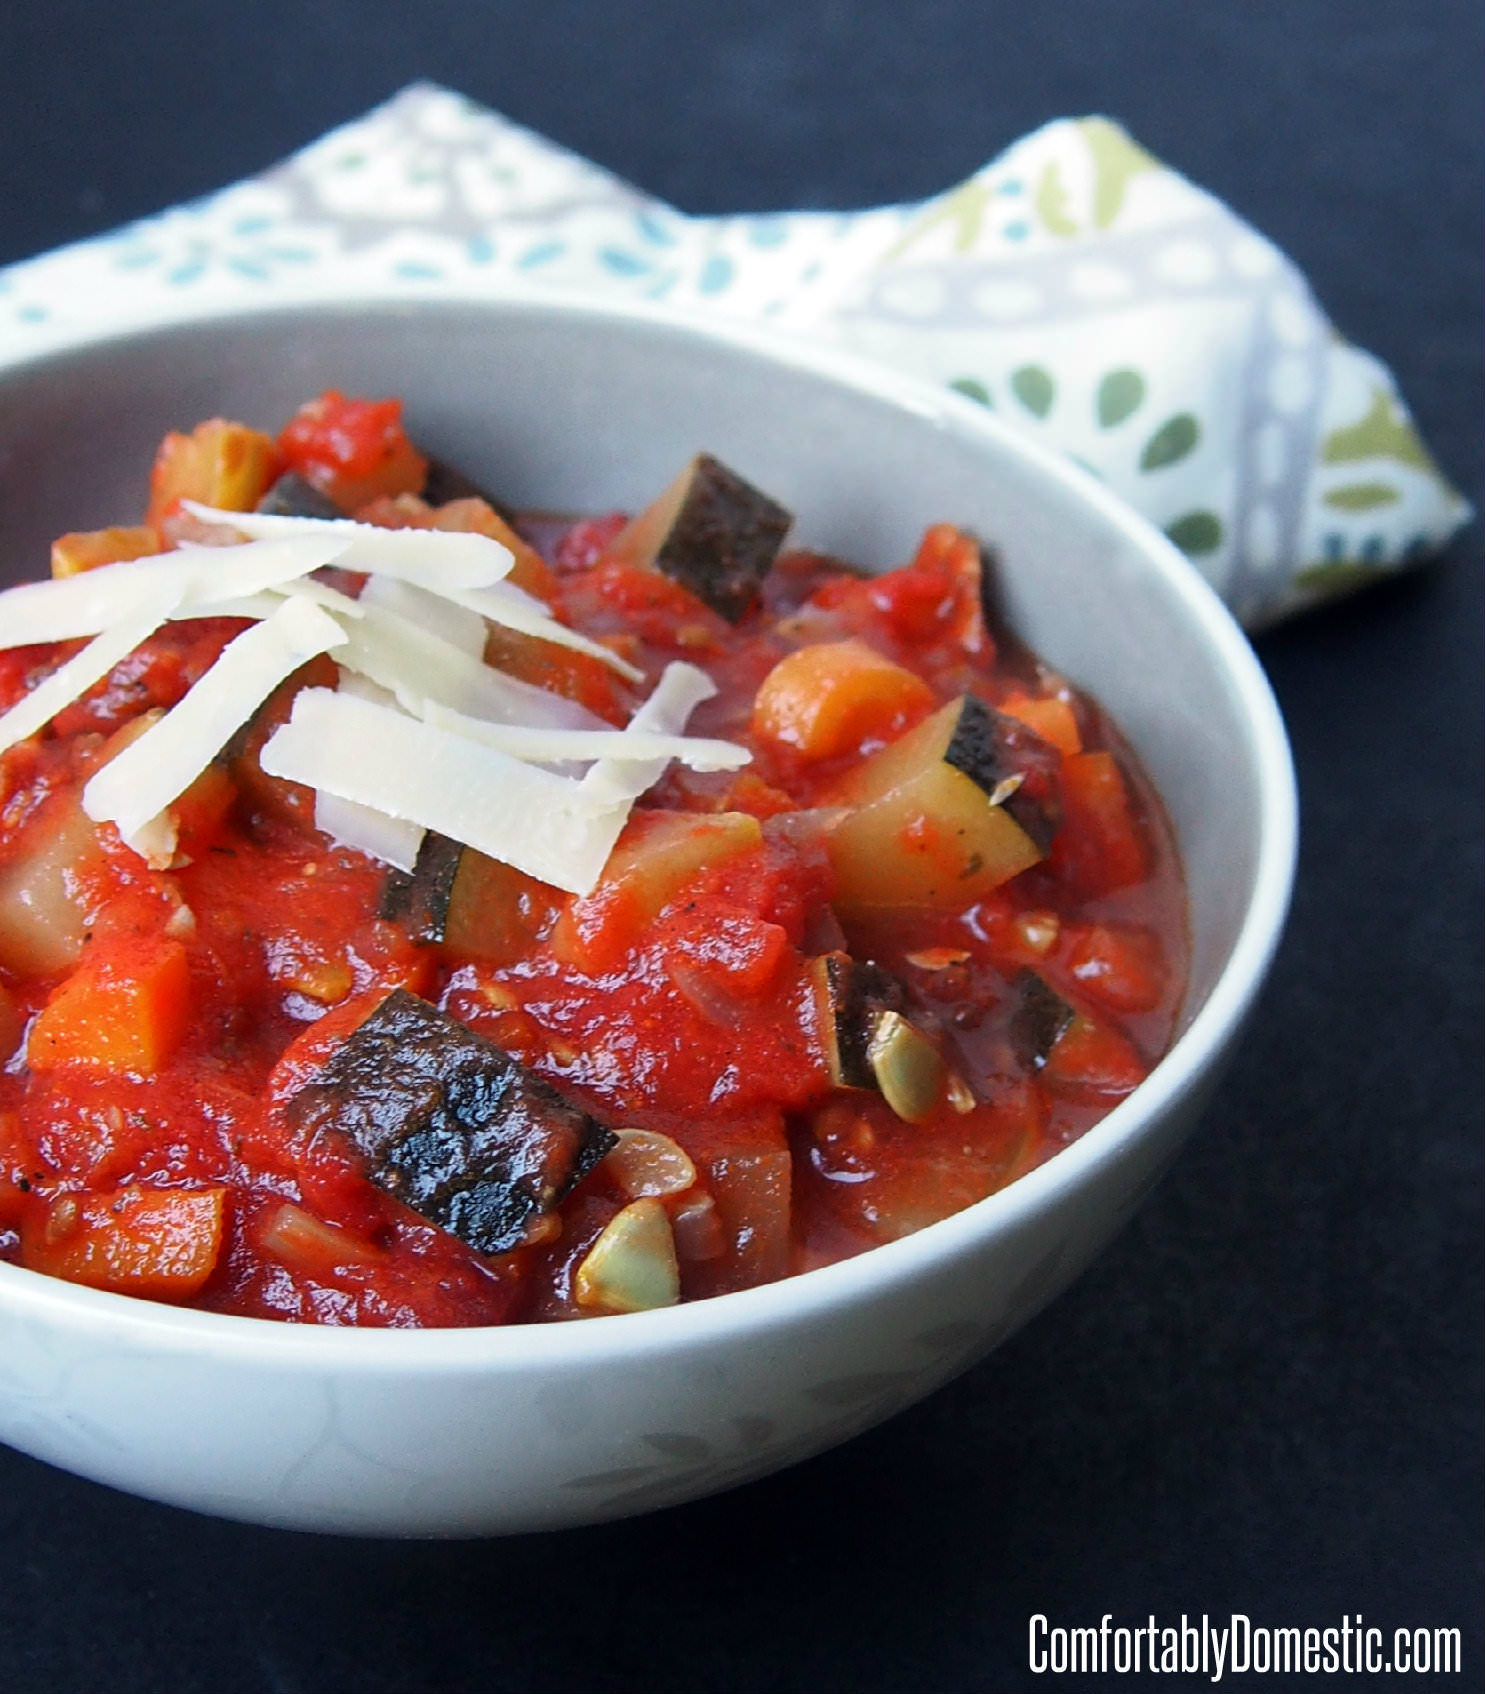 Homemade Ratatouille is a hearty, fresh vegetable stew, meant to nourish your body and warm your soul. | ComfortablyDomestic.com